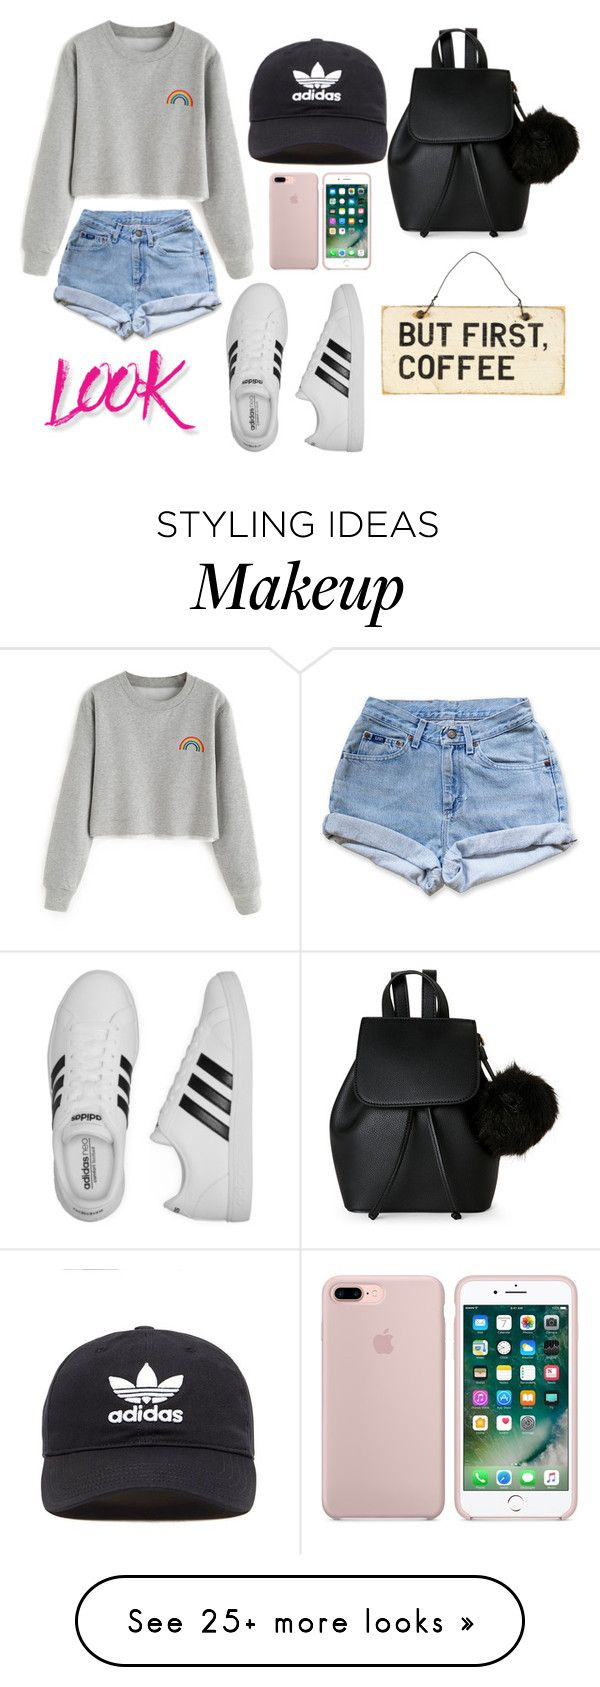 """subtitle, everyday look with an adidas hat for a lazy hair day!"" by soph1designer on Polyvore featuring Levi's, adidas, adidas Originals, NYX and IMoshion"